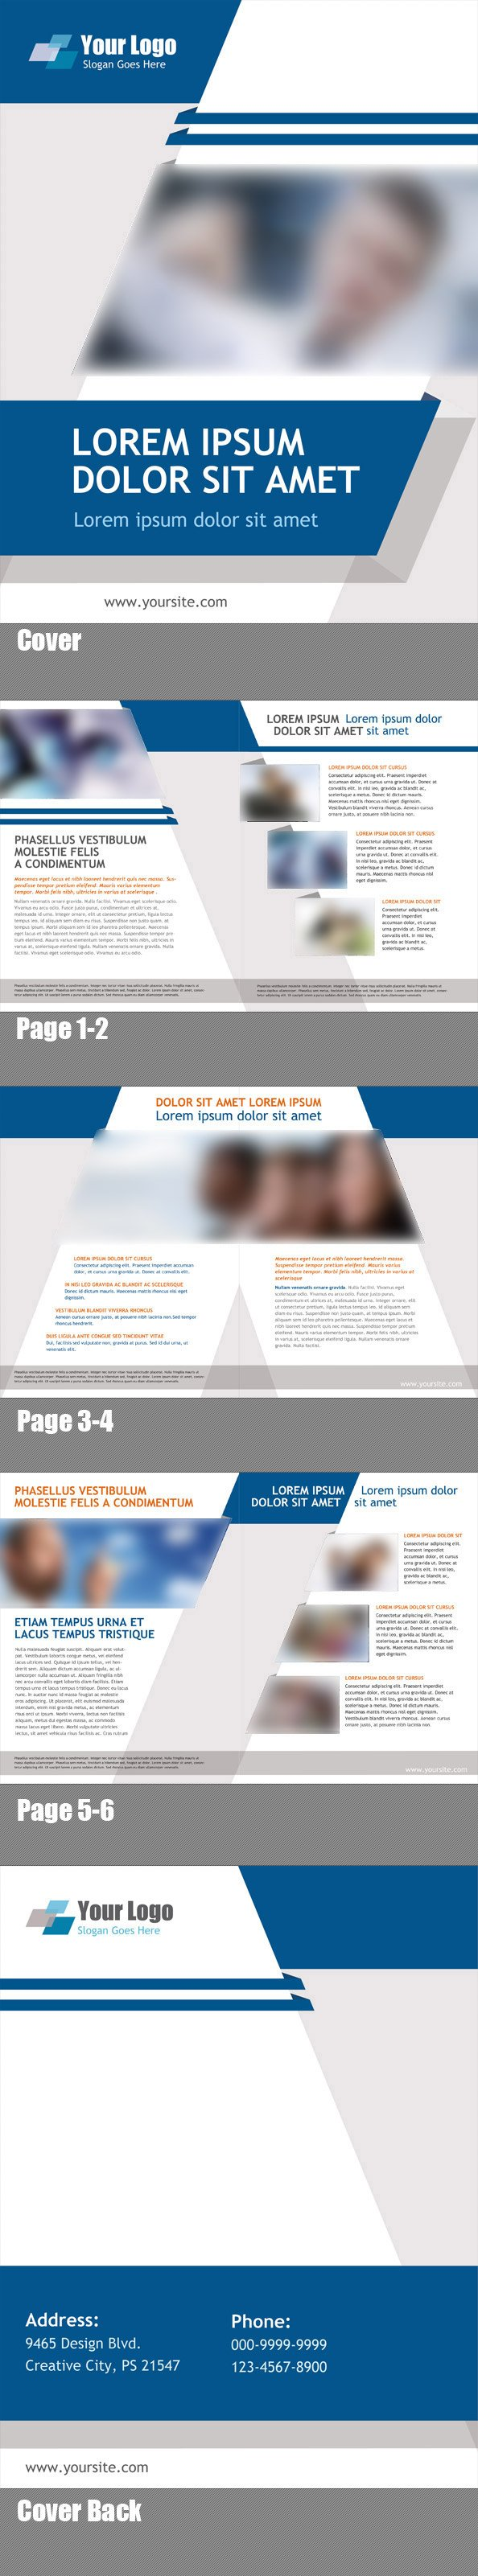 Free PSD Booklet Template 8 Pages vector image 365PSDcom